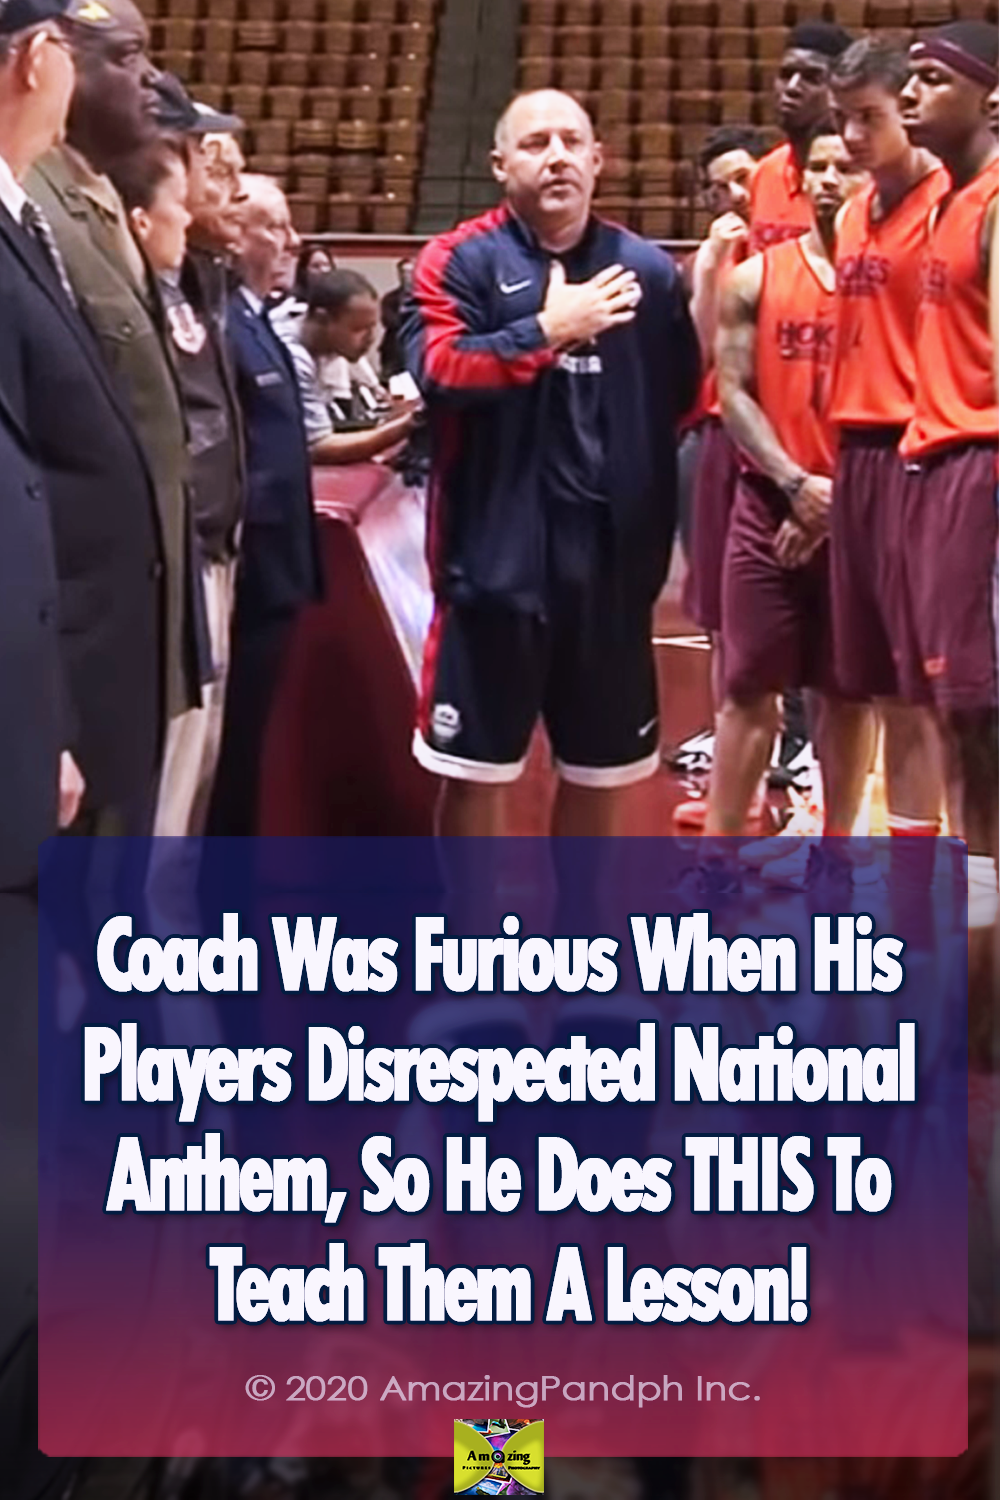 National Anthem, basketball, lesson, respect, team, coach, Players,